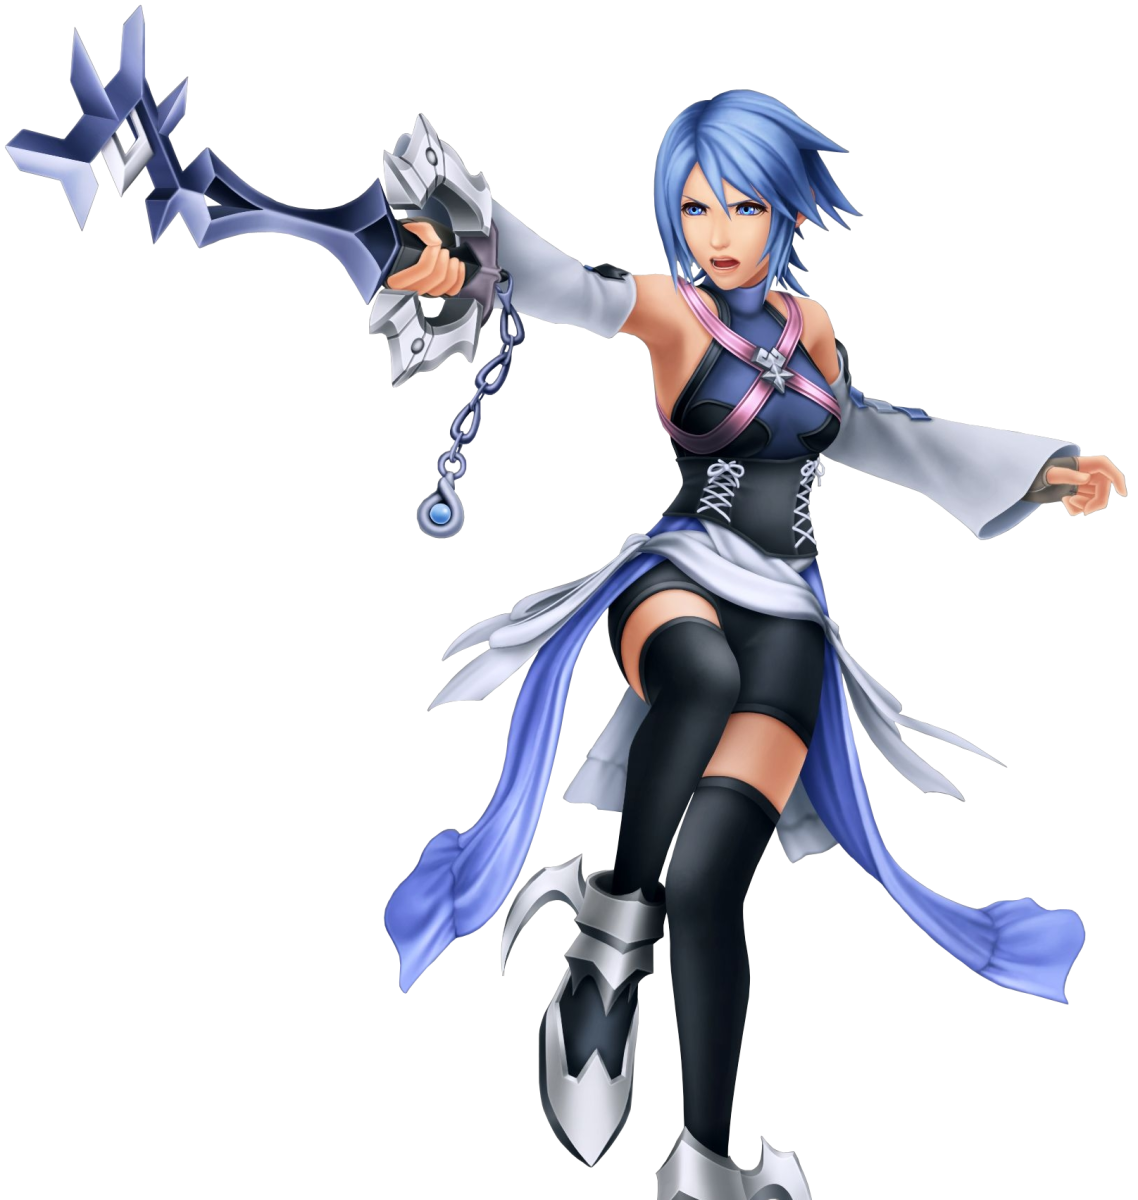 Aqua in Kingdom Hearts